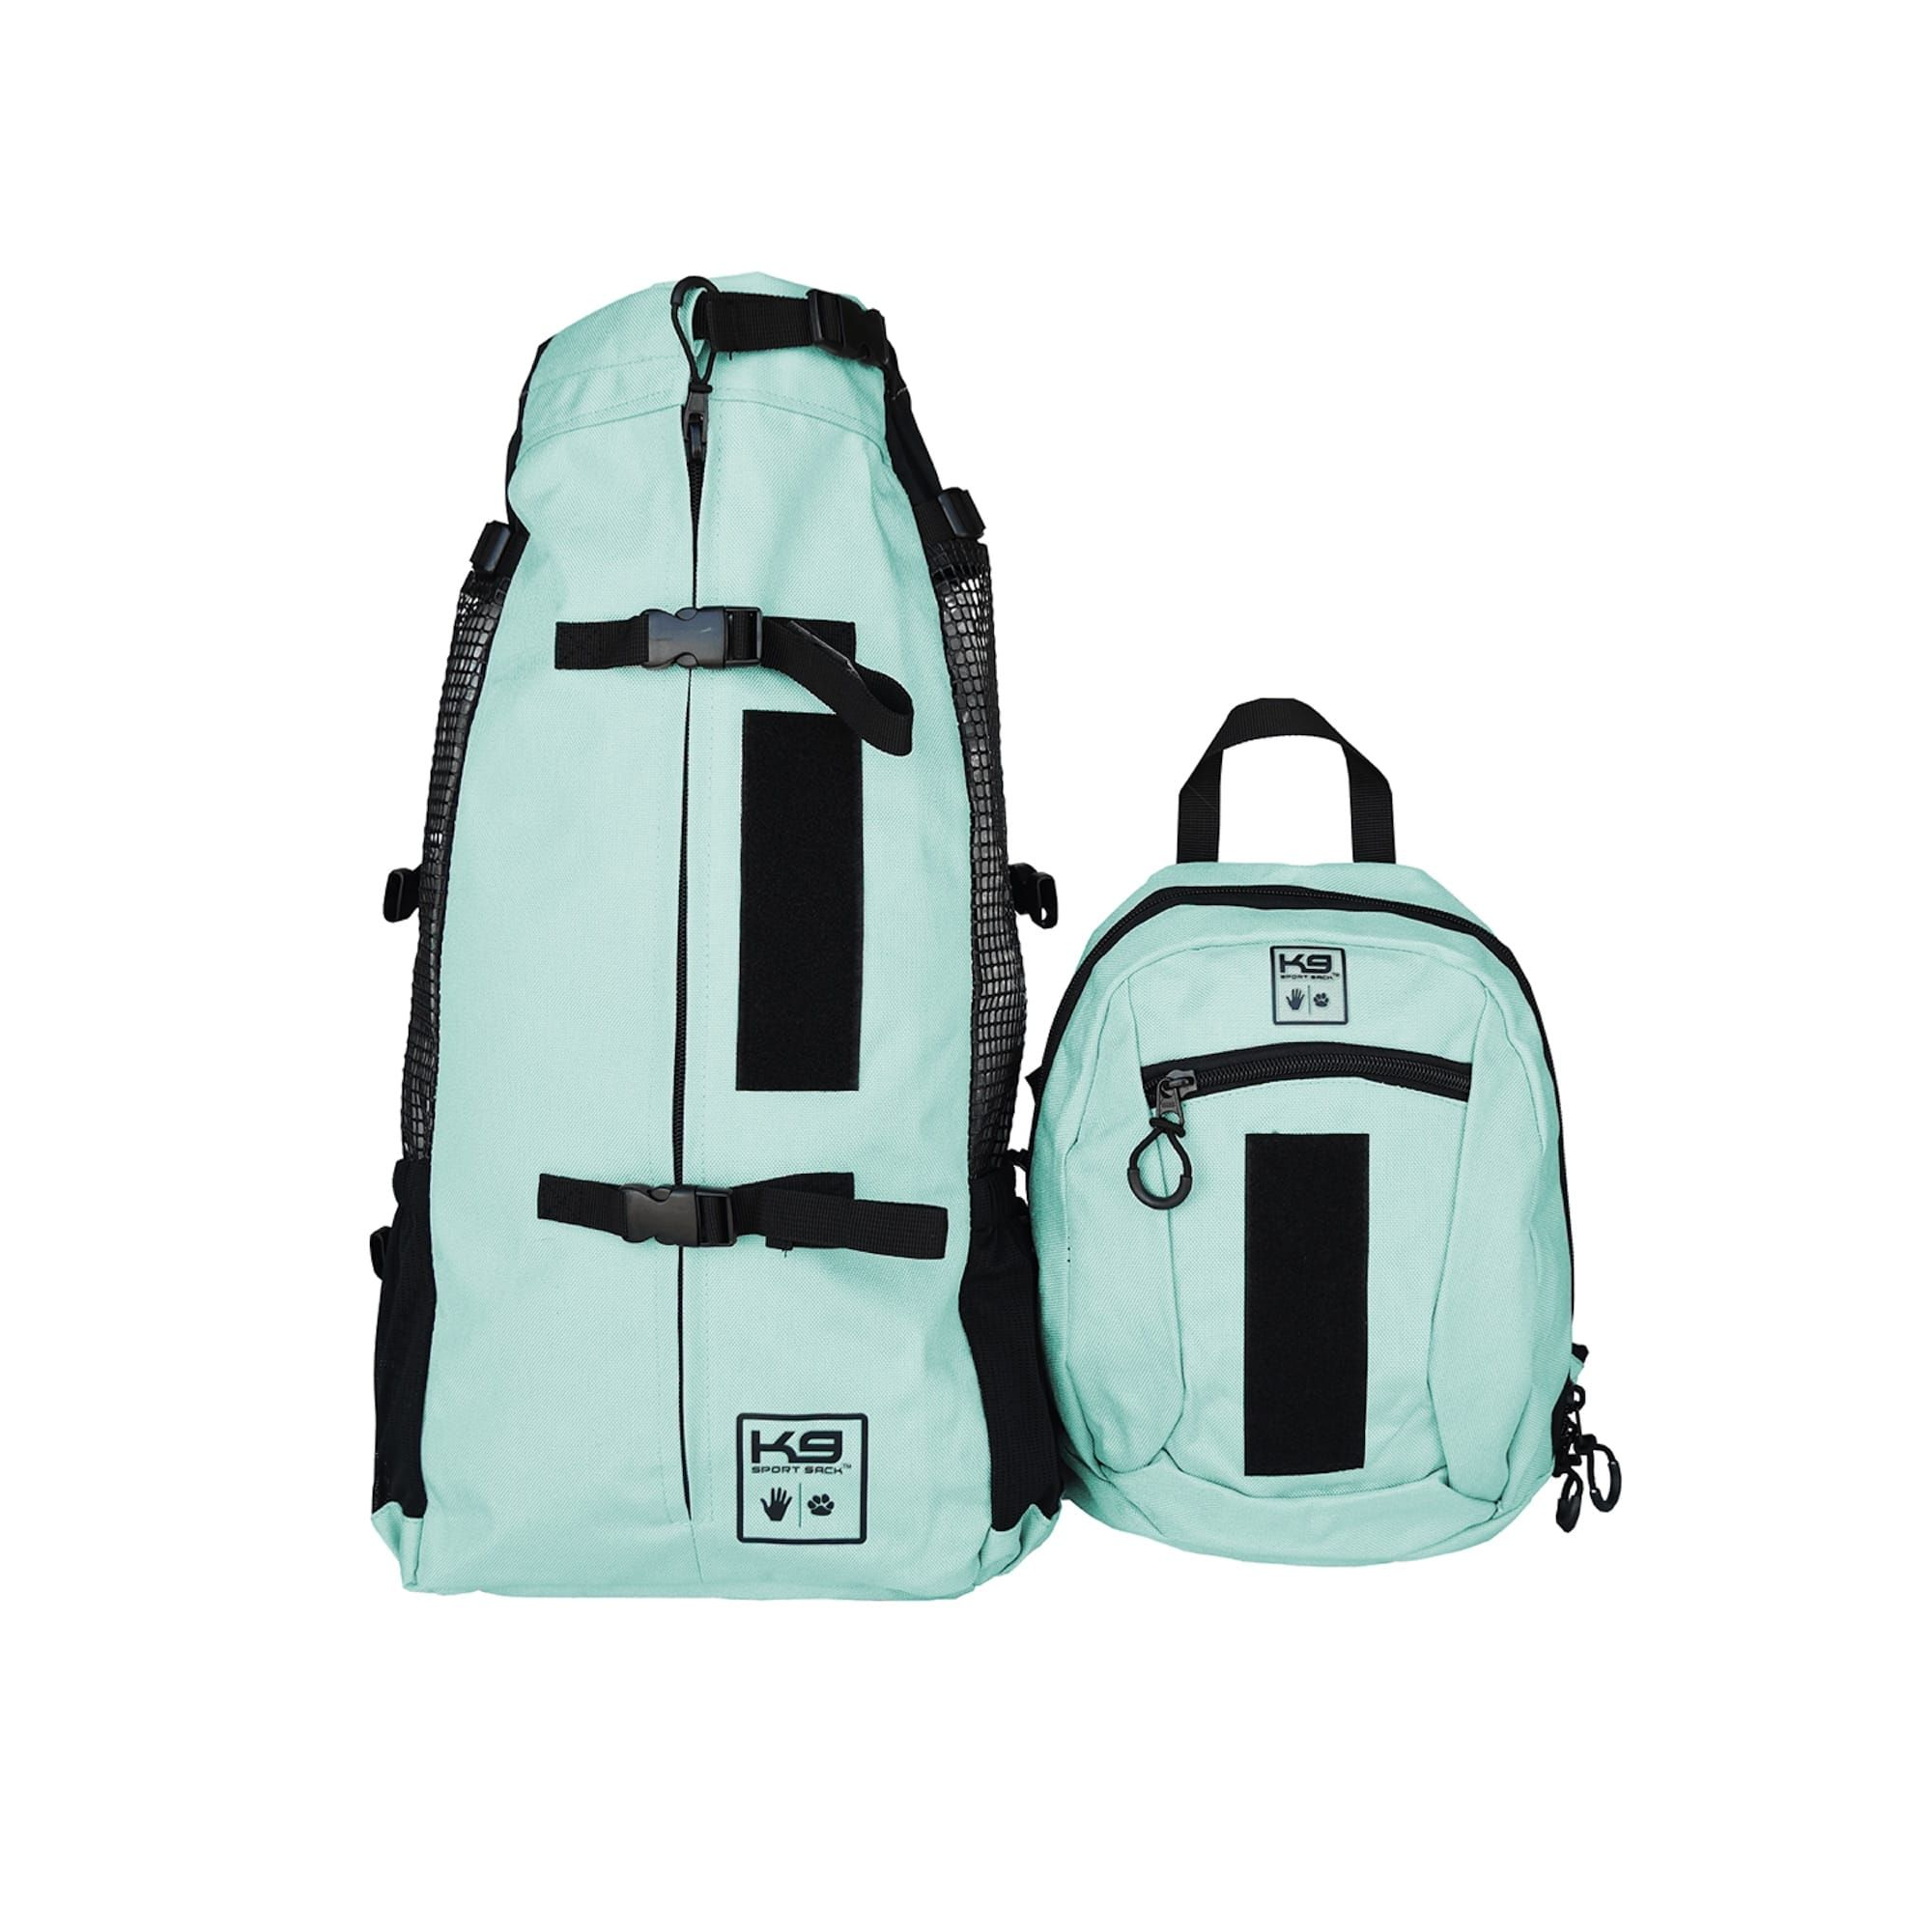 K9 Sport Sack Air Plus Green Backpack Pet Carrier With